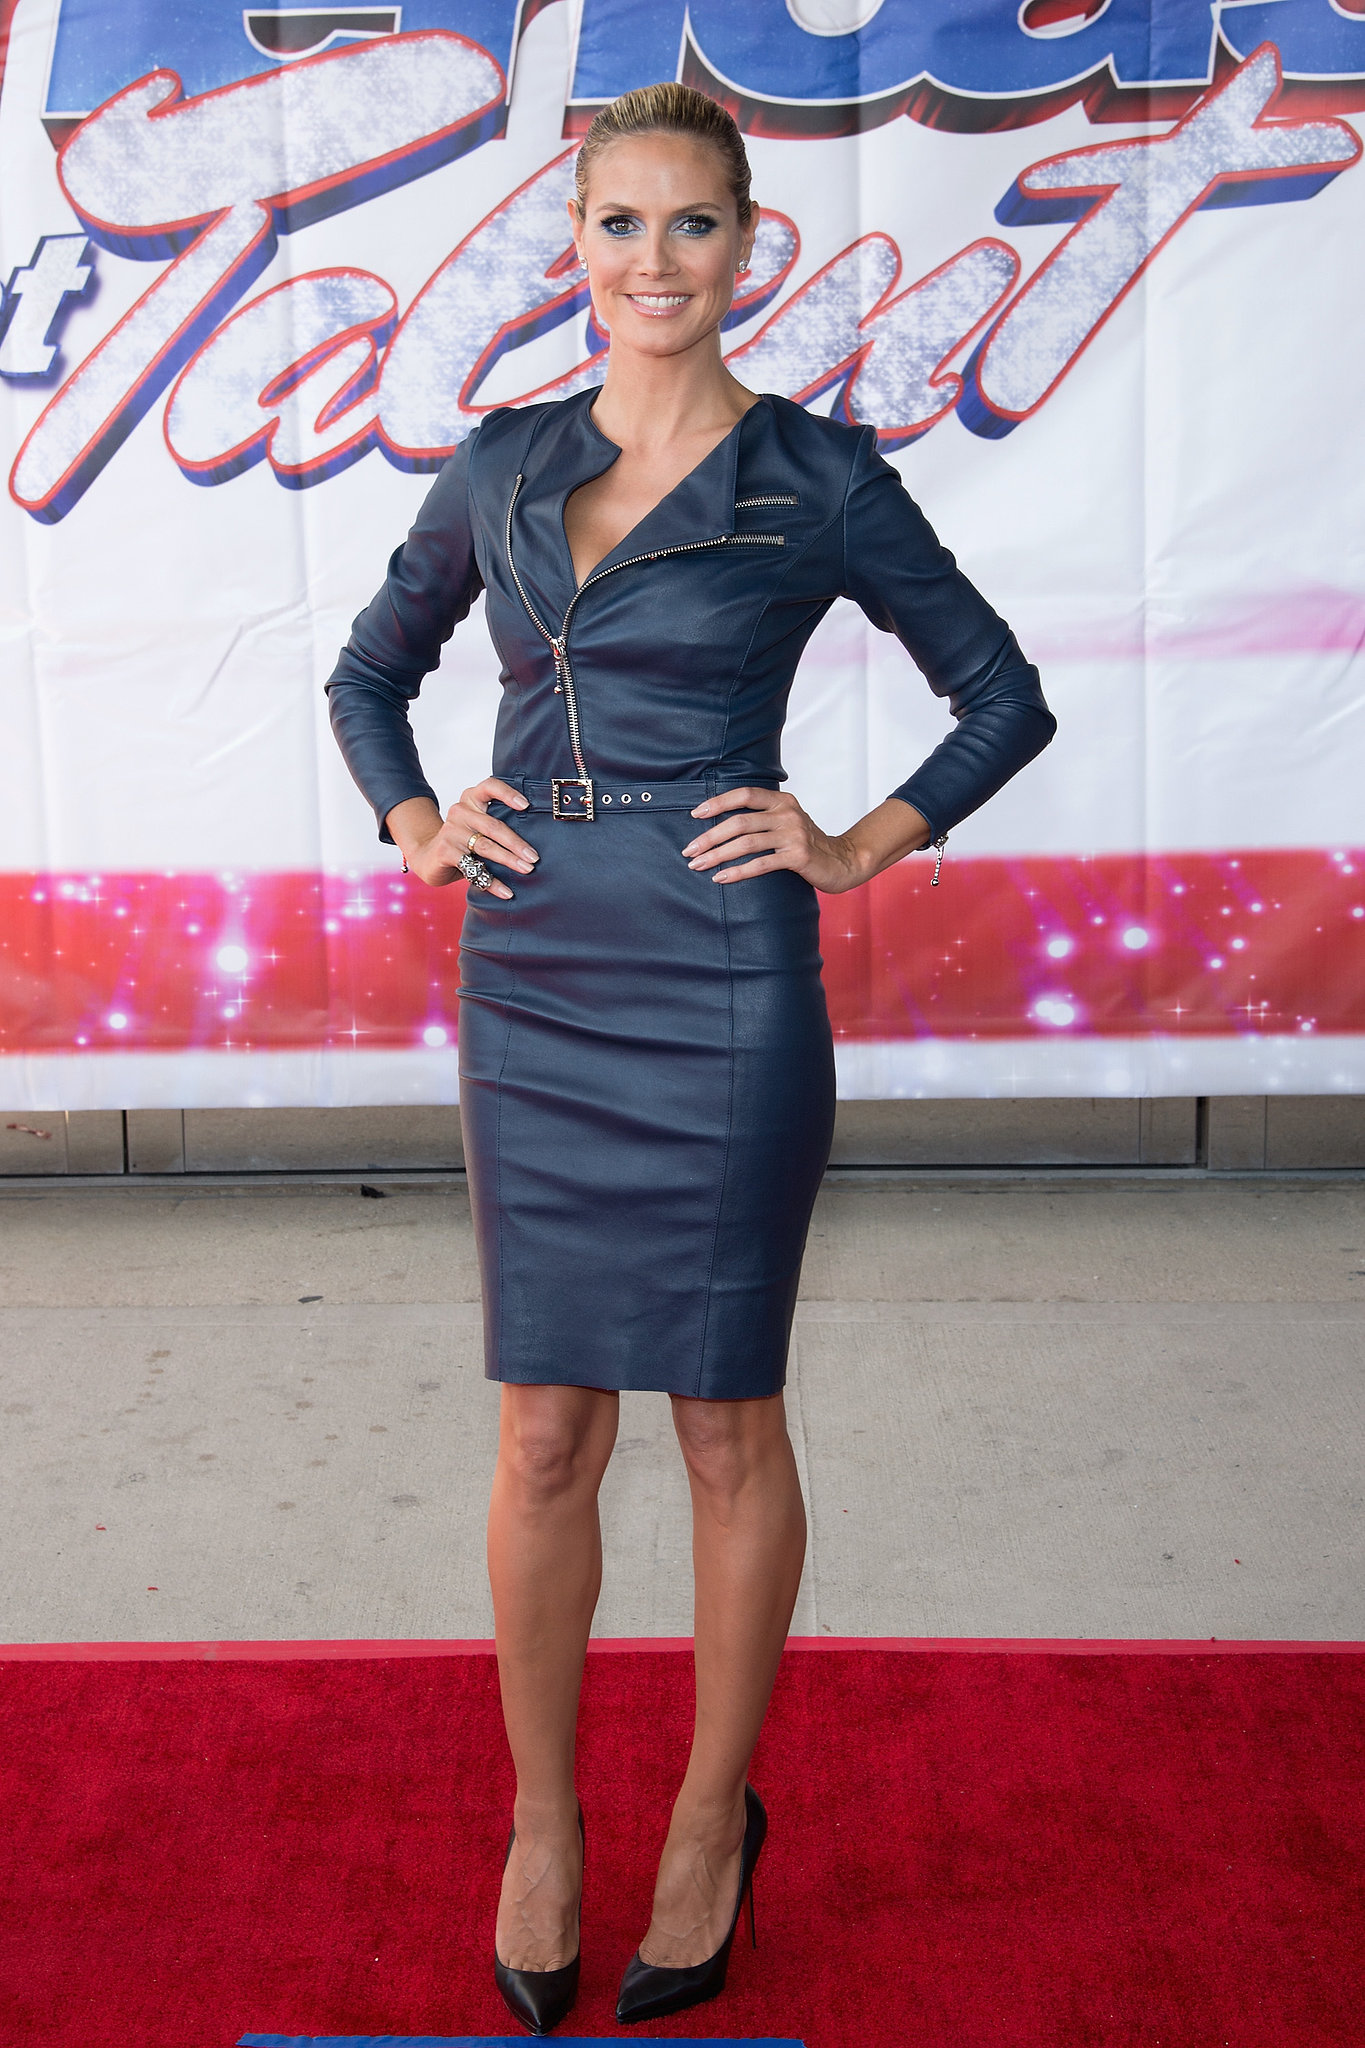 Heidi Klum in a Moto-Inspired Thomas Wylde Dress at a 2013 America's Got Talent Event